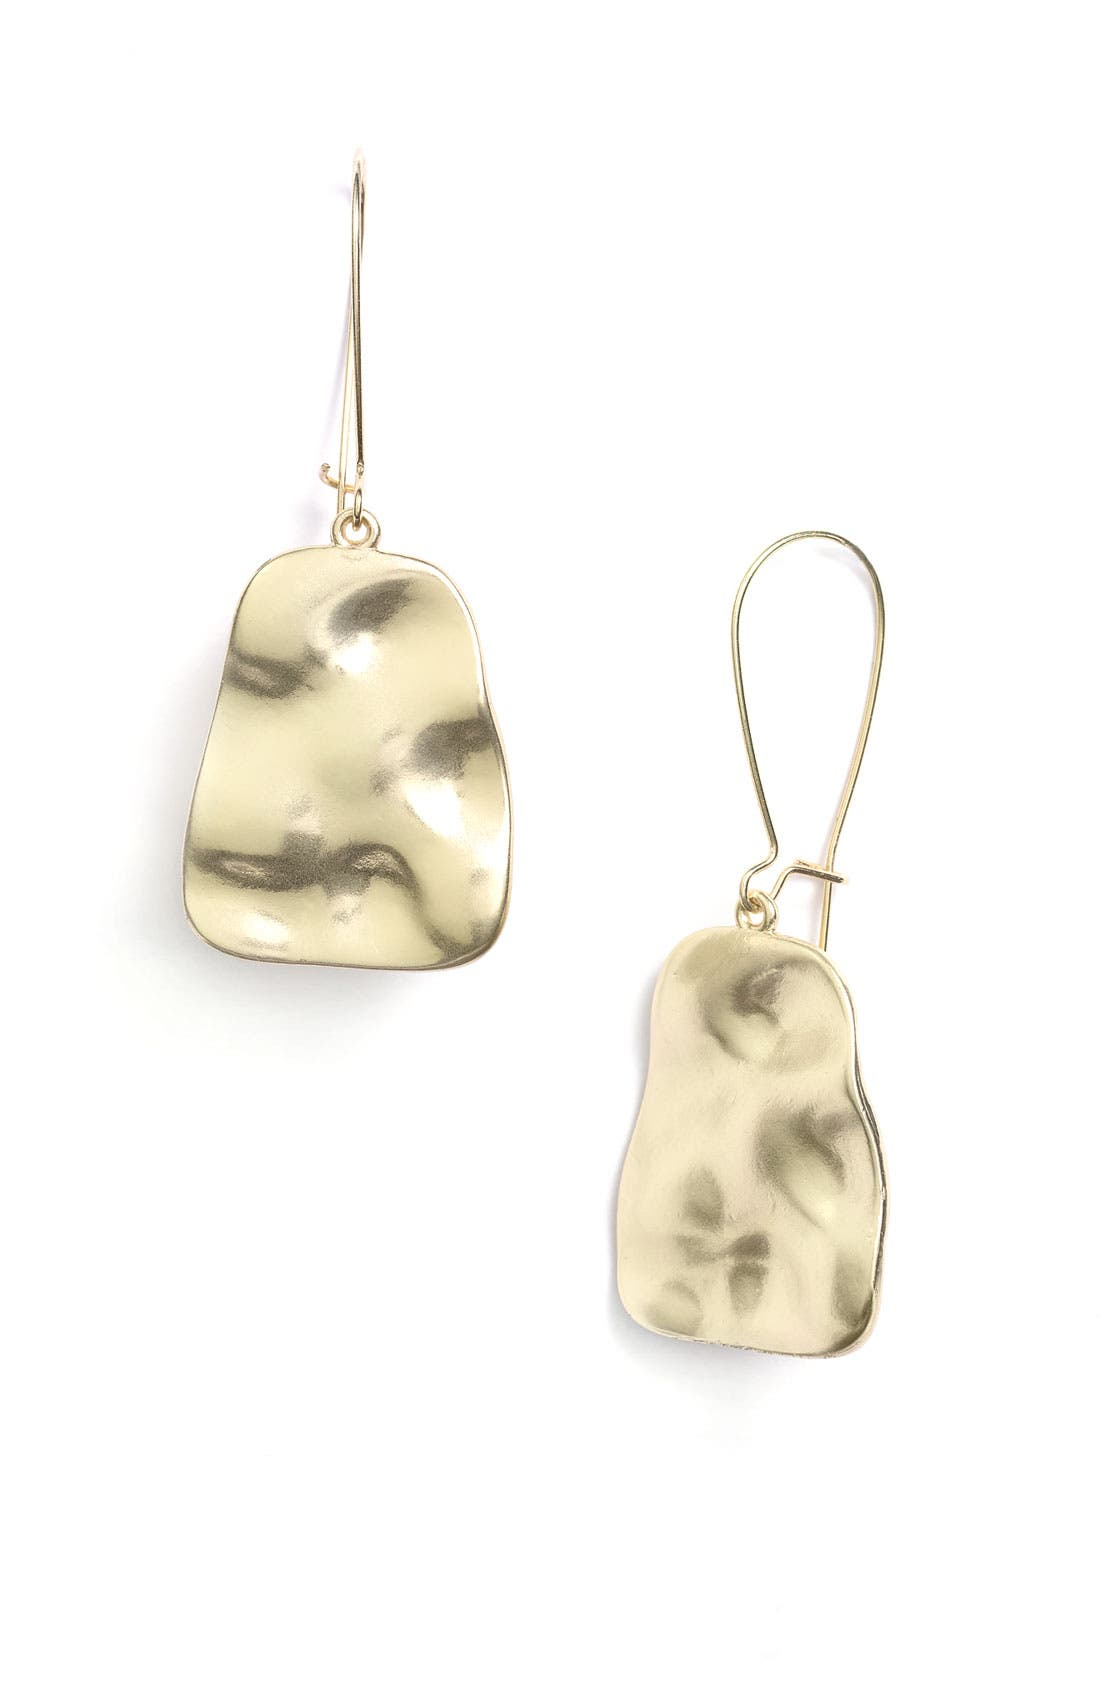 Main Image - Nordstrom 'Gold Water' Textured Drop Earrings